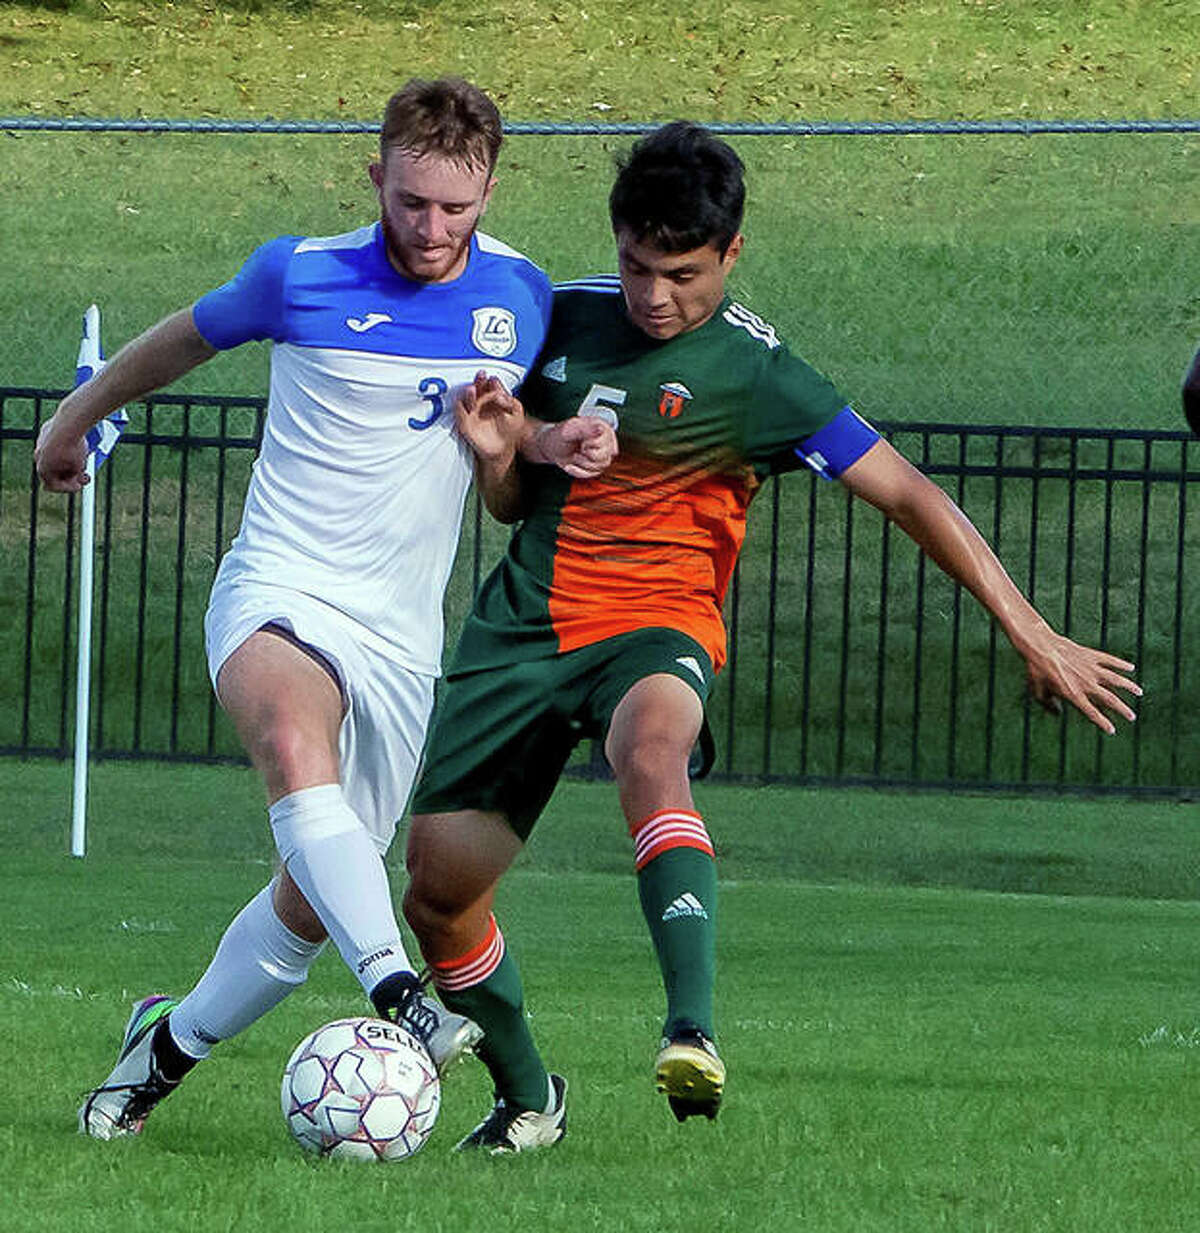 Lewis and Clark's Daylan Frerker, left, controls the ball against Jean Arreguin of Lincoln Trail Wednesday at Rooney Stadium. No. 13-ranked LCCC won 4-1.